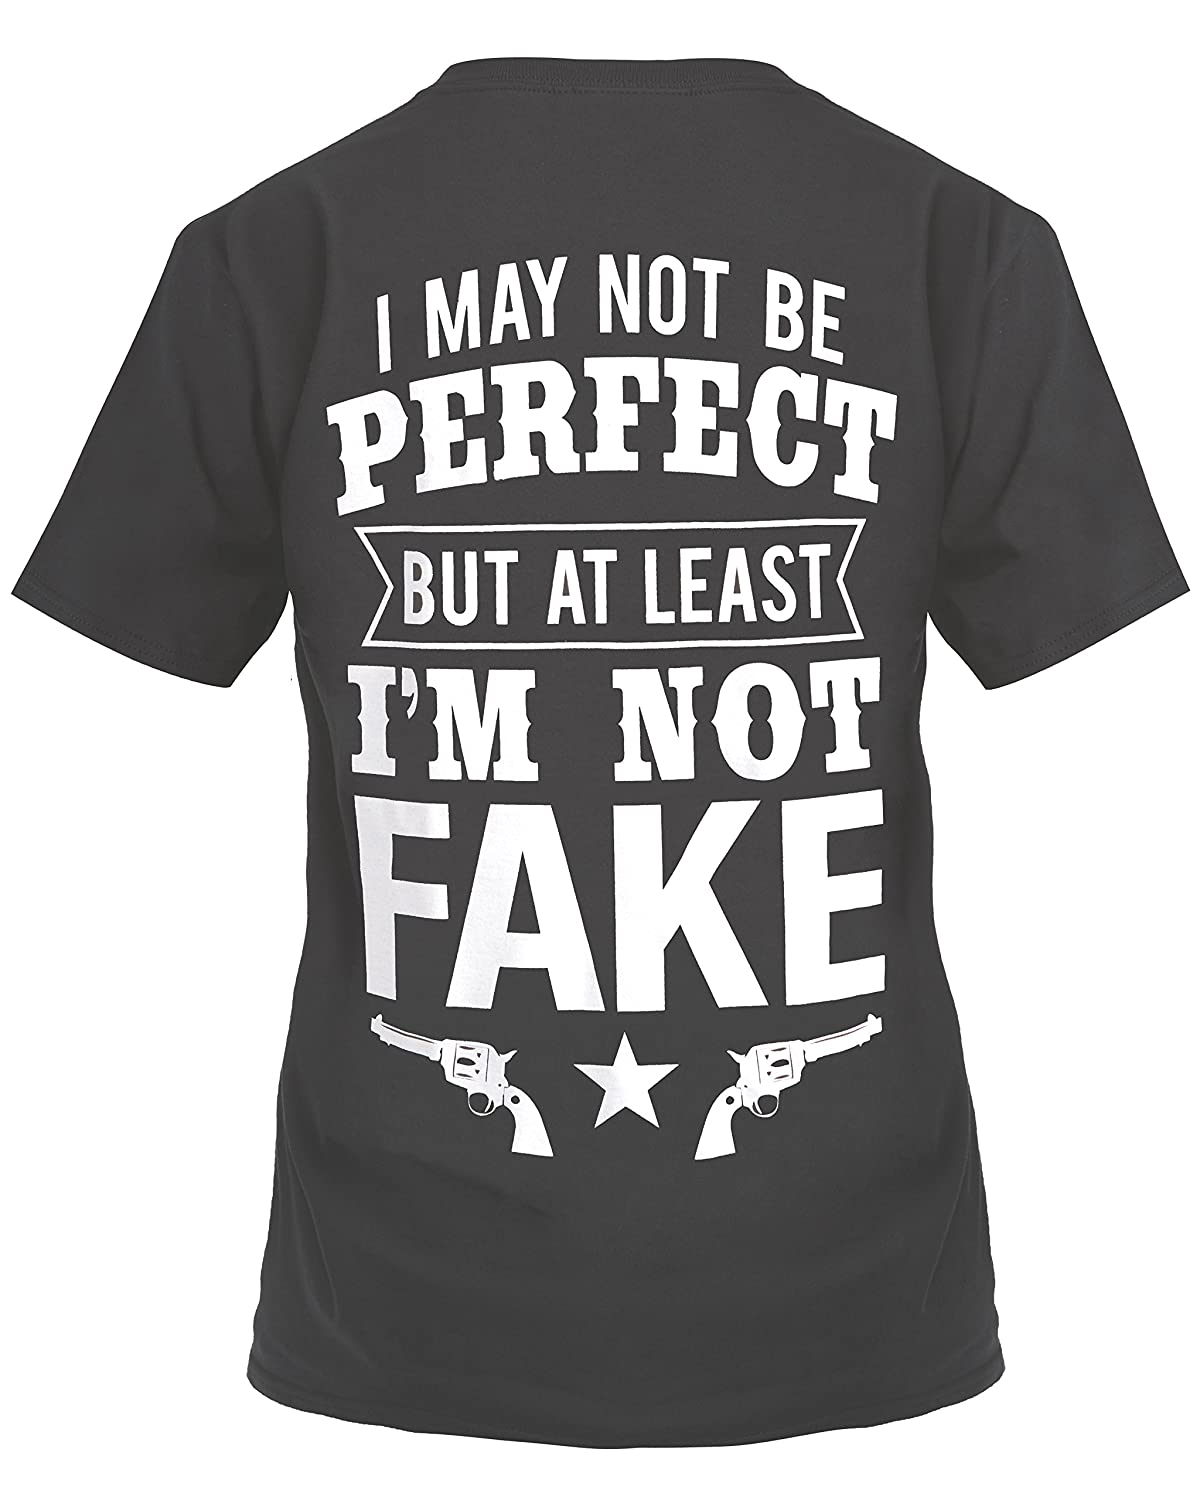 94077a8fee514 Amazon.com  Cute n  Country Shirt  I May Not Be Perfect But at Least I m  Not Fake Black  Clothing